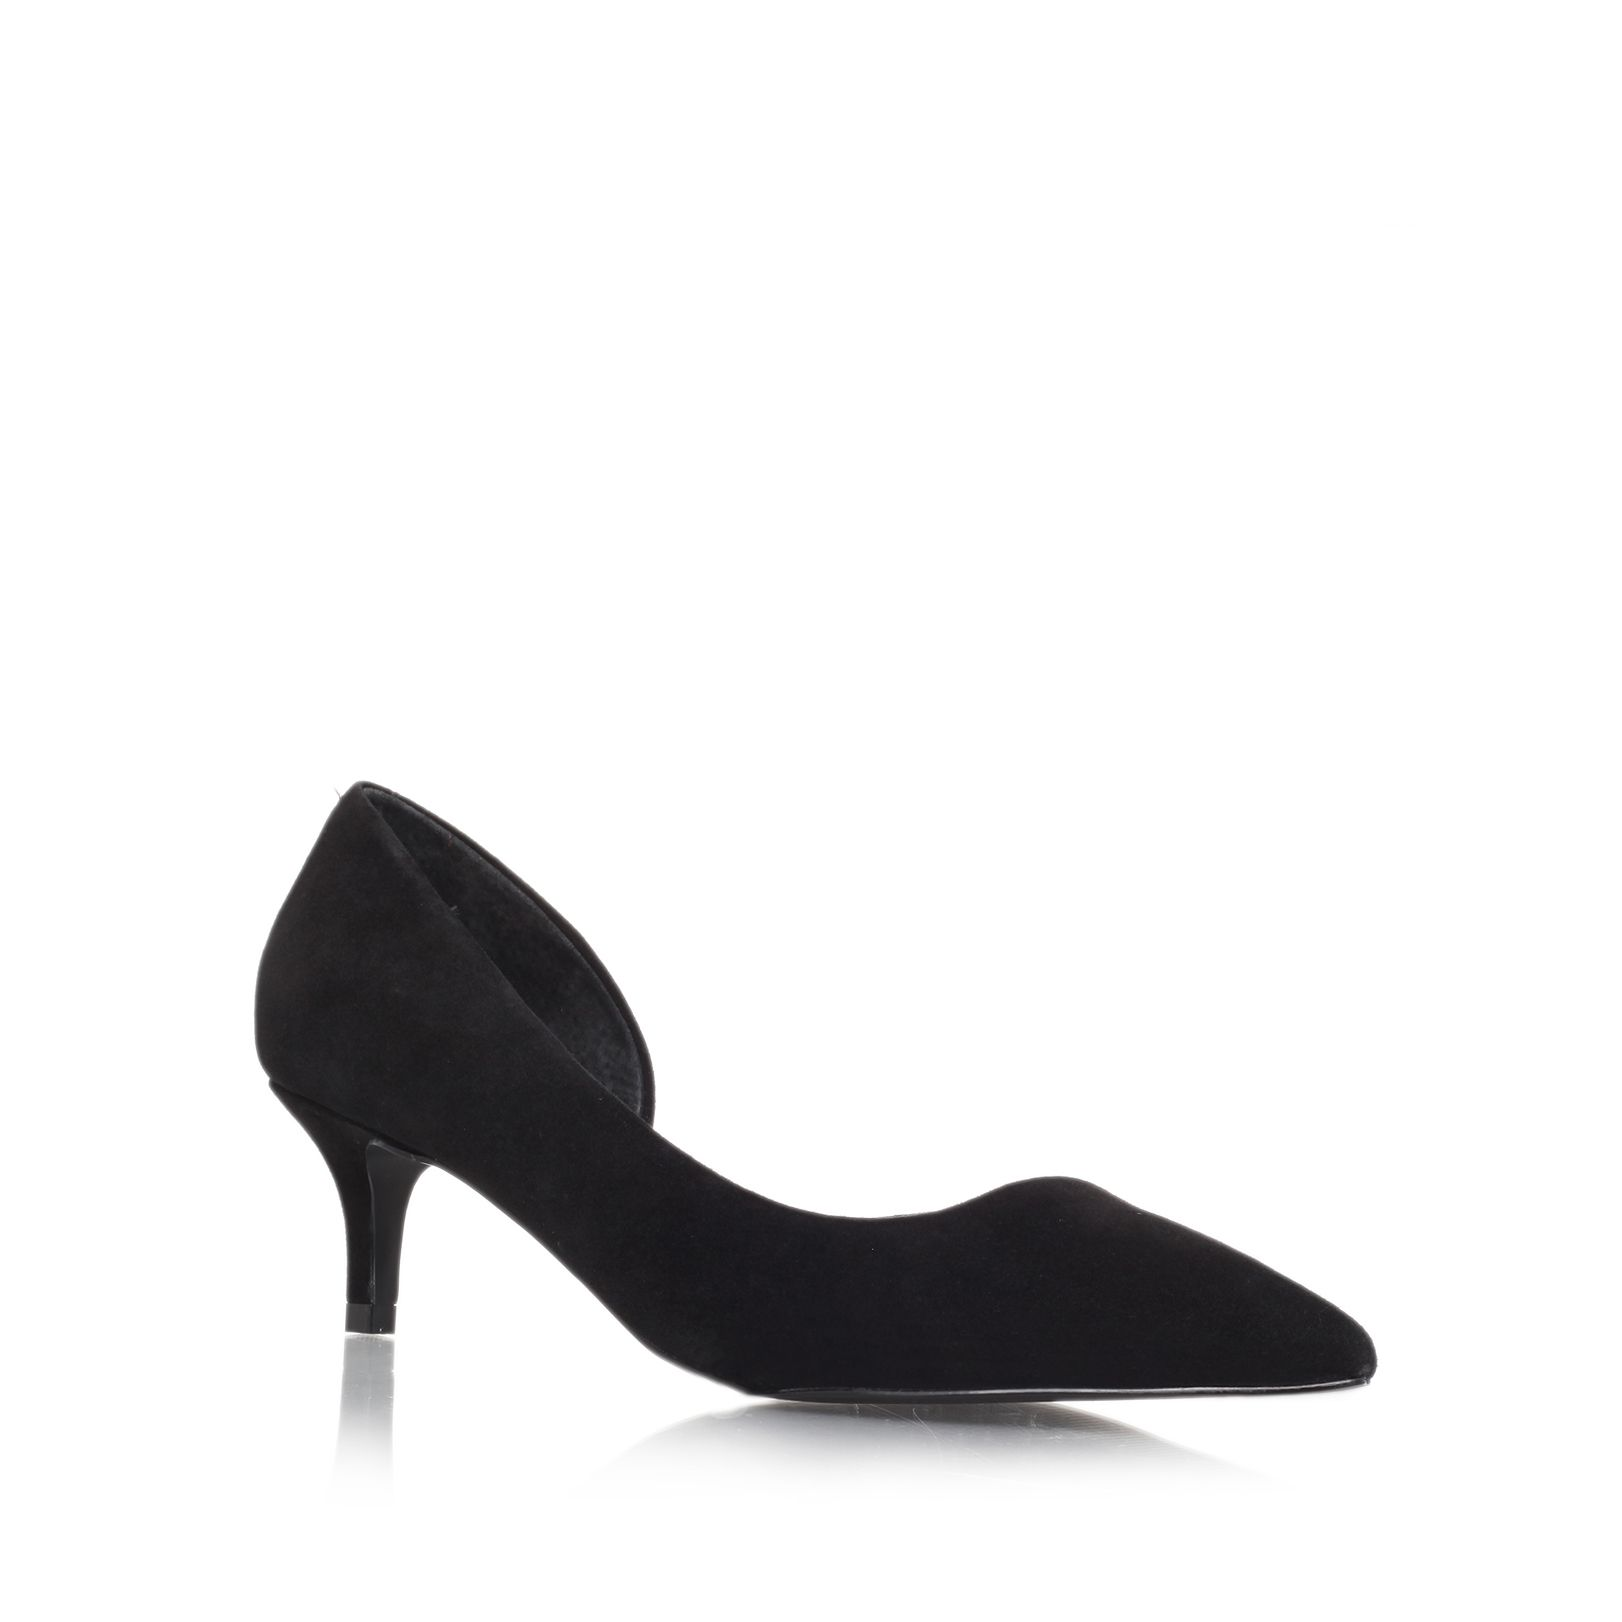 Cara low heel court shoes